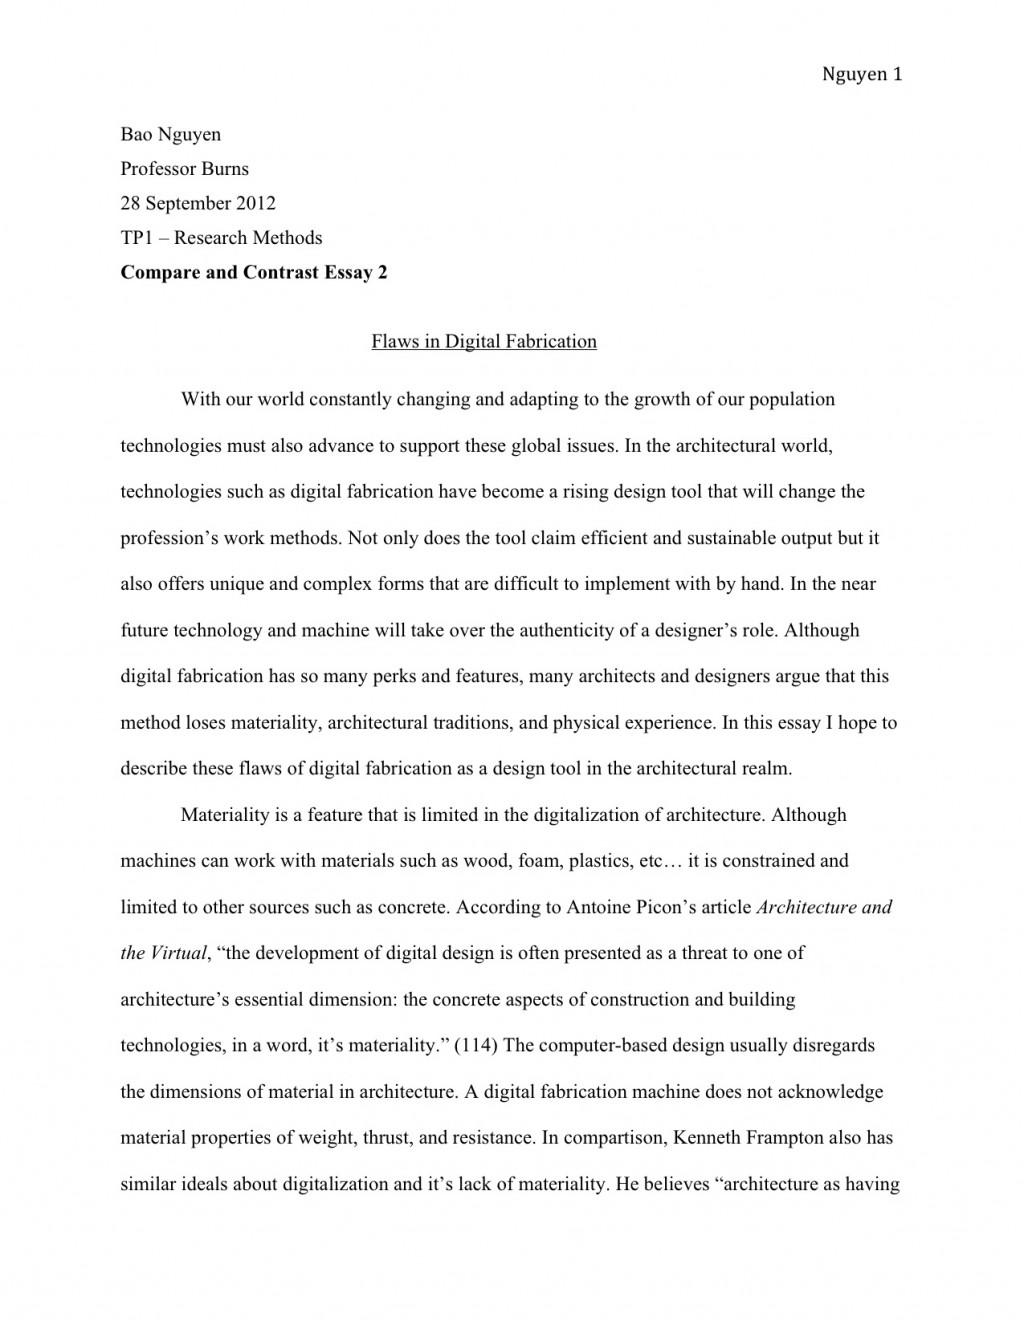 004 How To Write Essay Tp1 3 Amazing About Yourself An For A Job Interview Titles In Paper Large